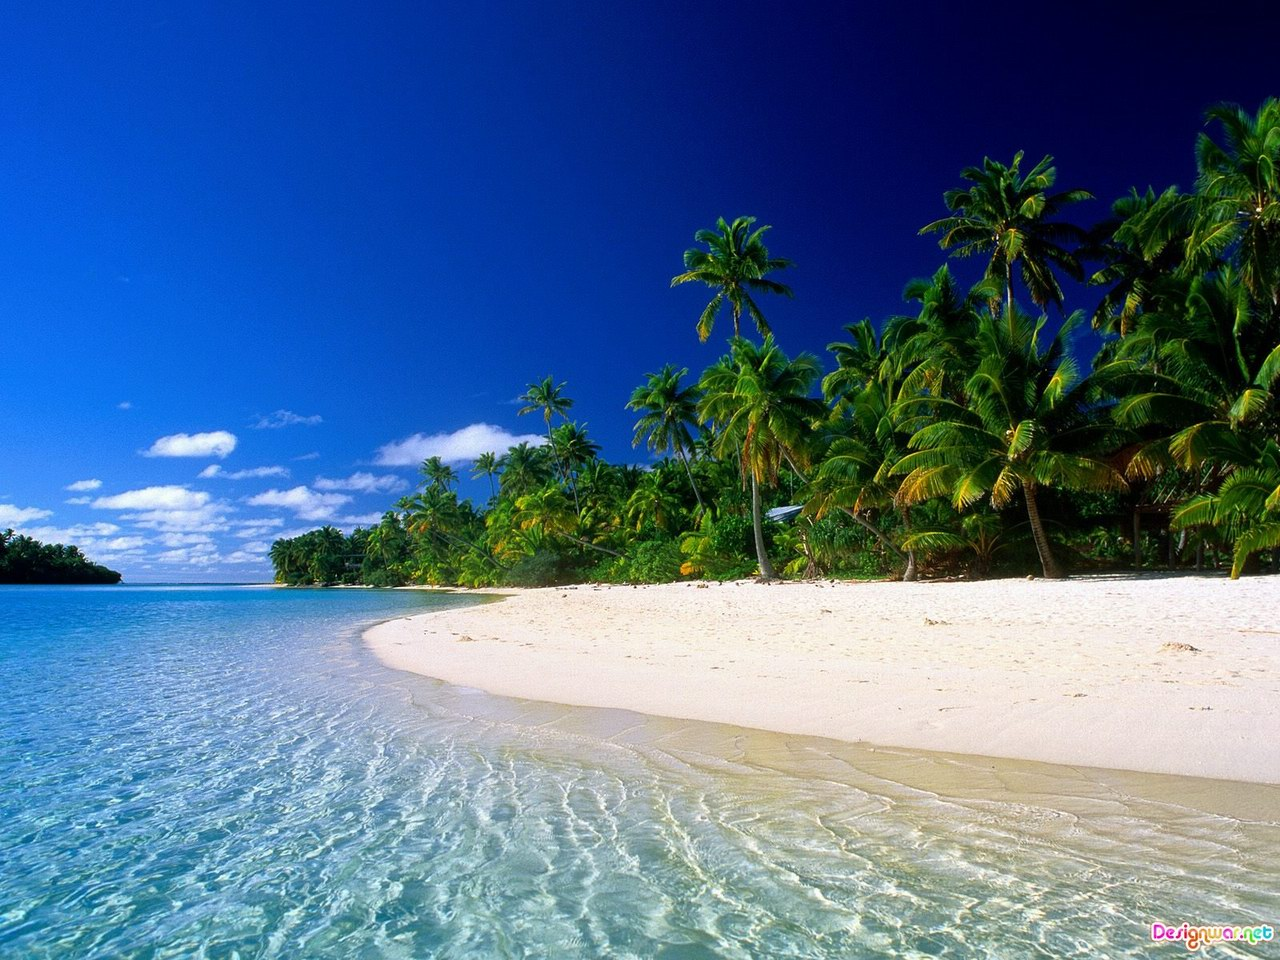 https://3.bp.blogspot.com/-ZRZtCx2lk1U/Tb4yP0WOzXI/AAAAAAAAA7w/EakDJnNAGVc/s1600/Tropical-Beach-wallpapers.jpg